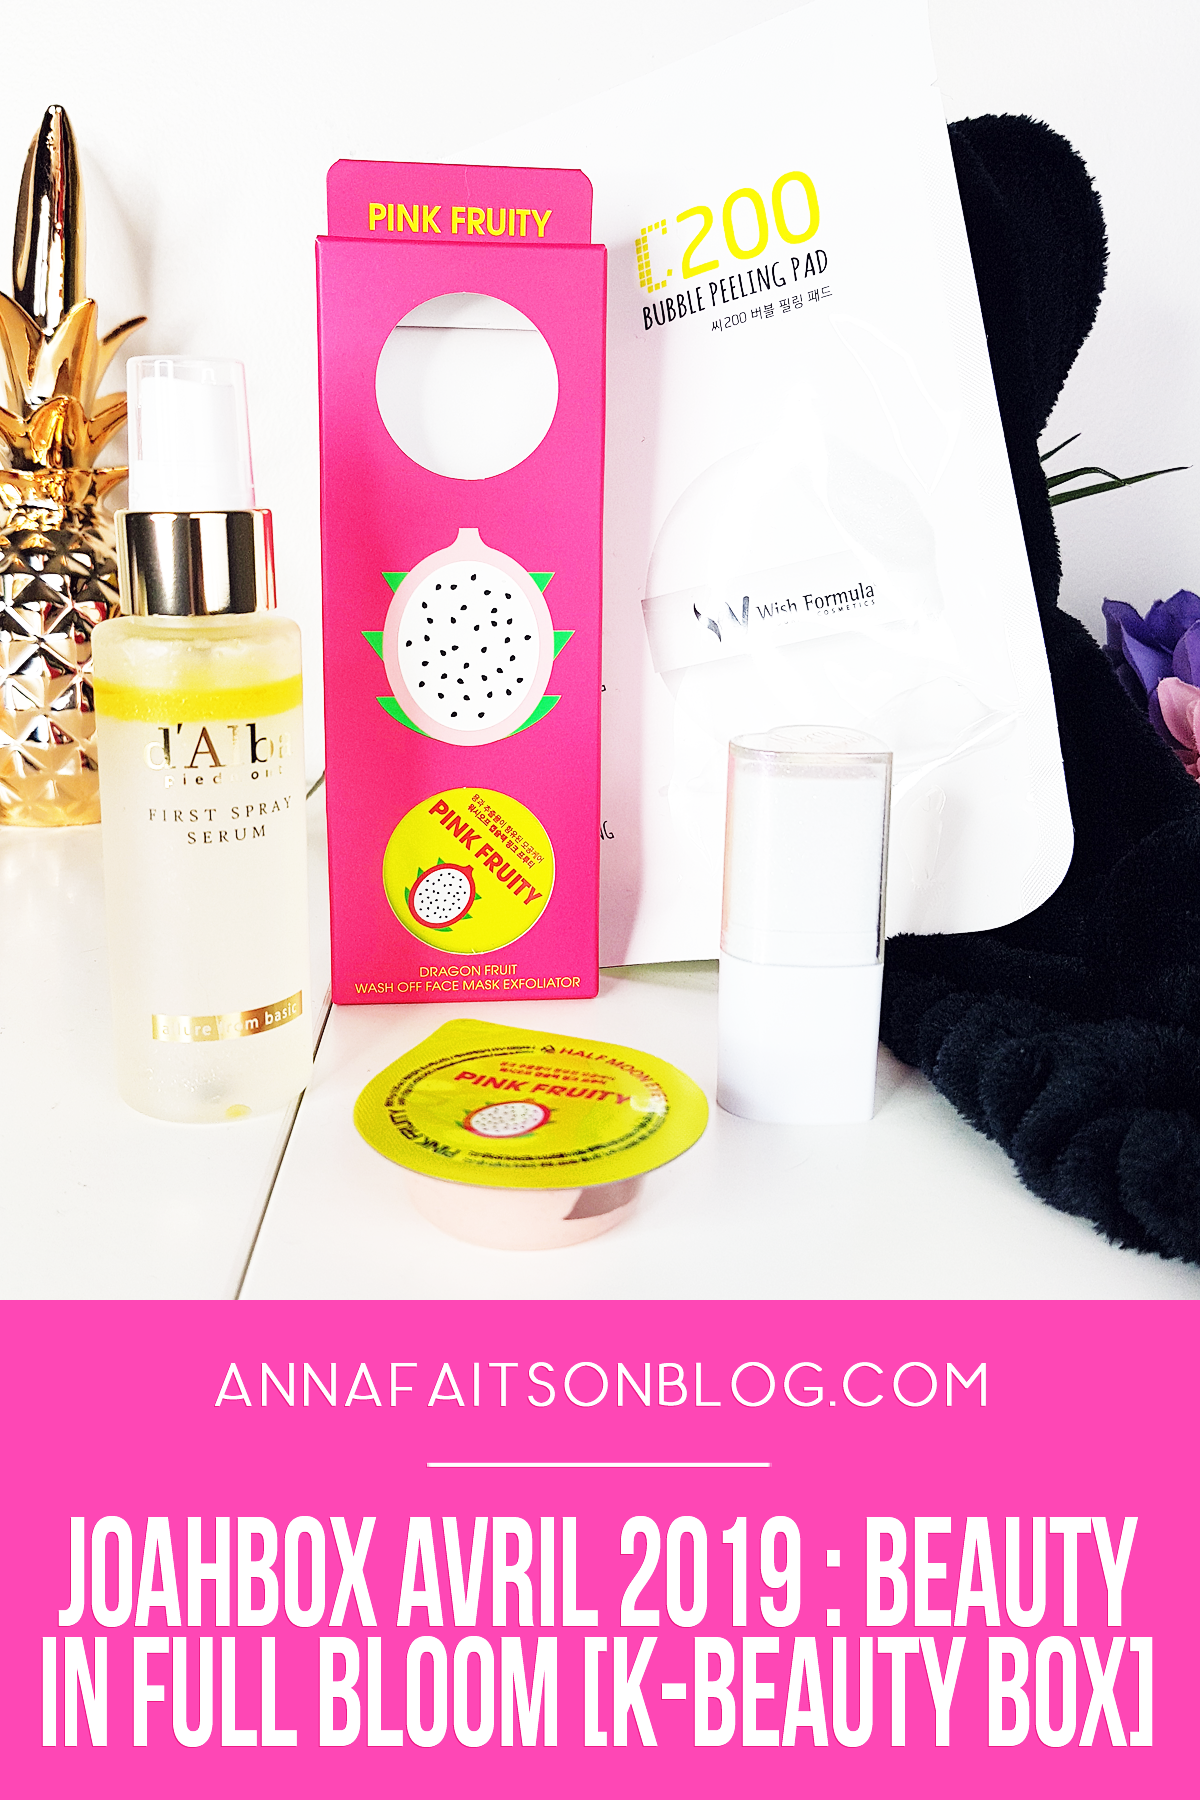 Joahbox Avril 2019 #beautybox #kbeauty